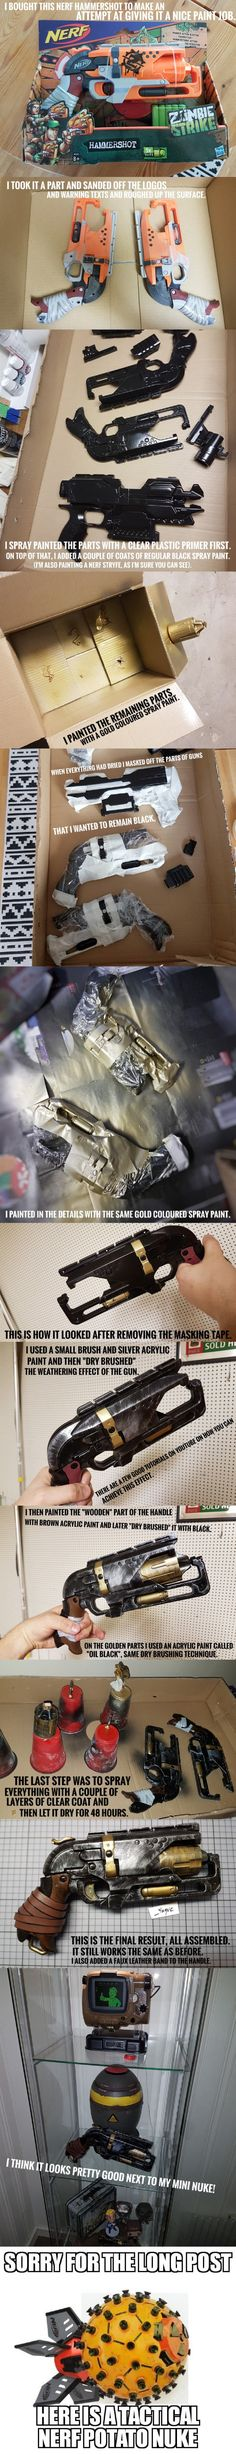 My first attempt at painting a Nerf gun. Cosplay Weapons, Cosplay Armor, Indoor Play Centre, Cool Nerf Guns, Best Of 9gag, Nerf Mod, Steampunk Weapons, Cardboard Crafts, Dieselpunk